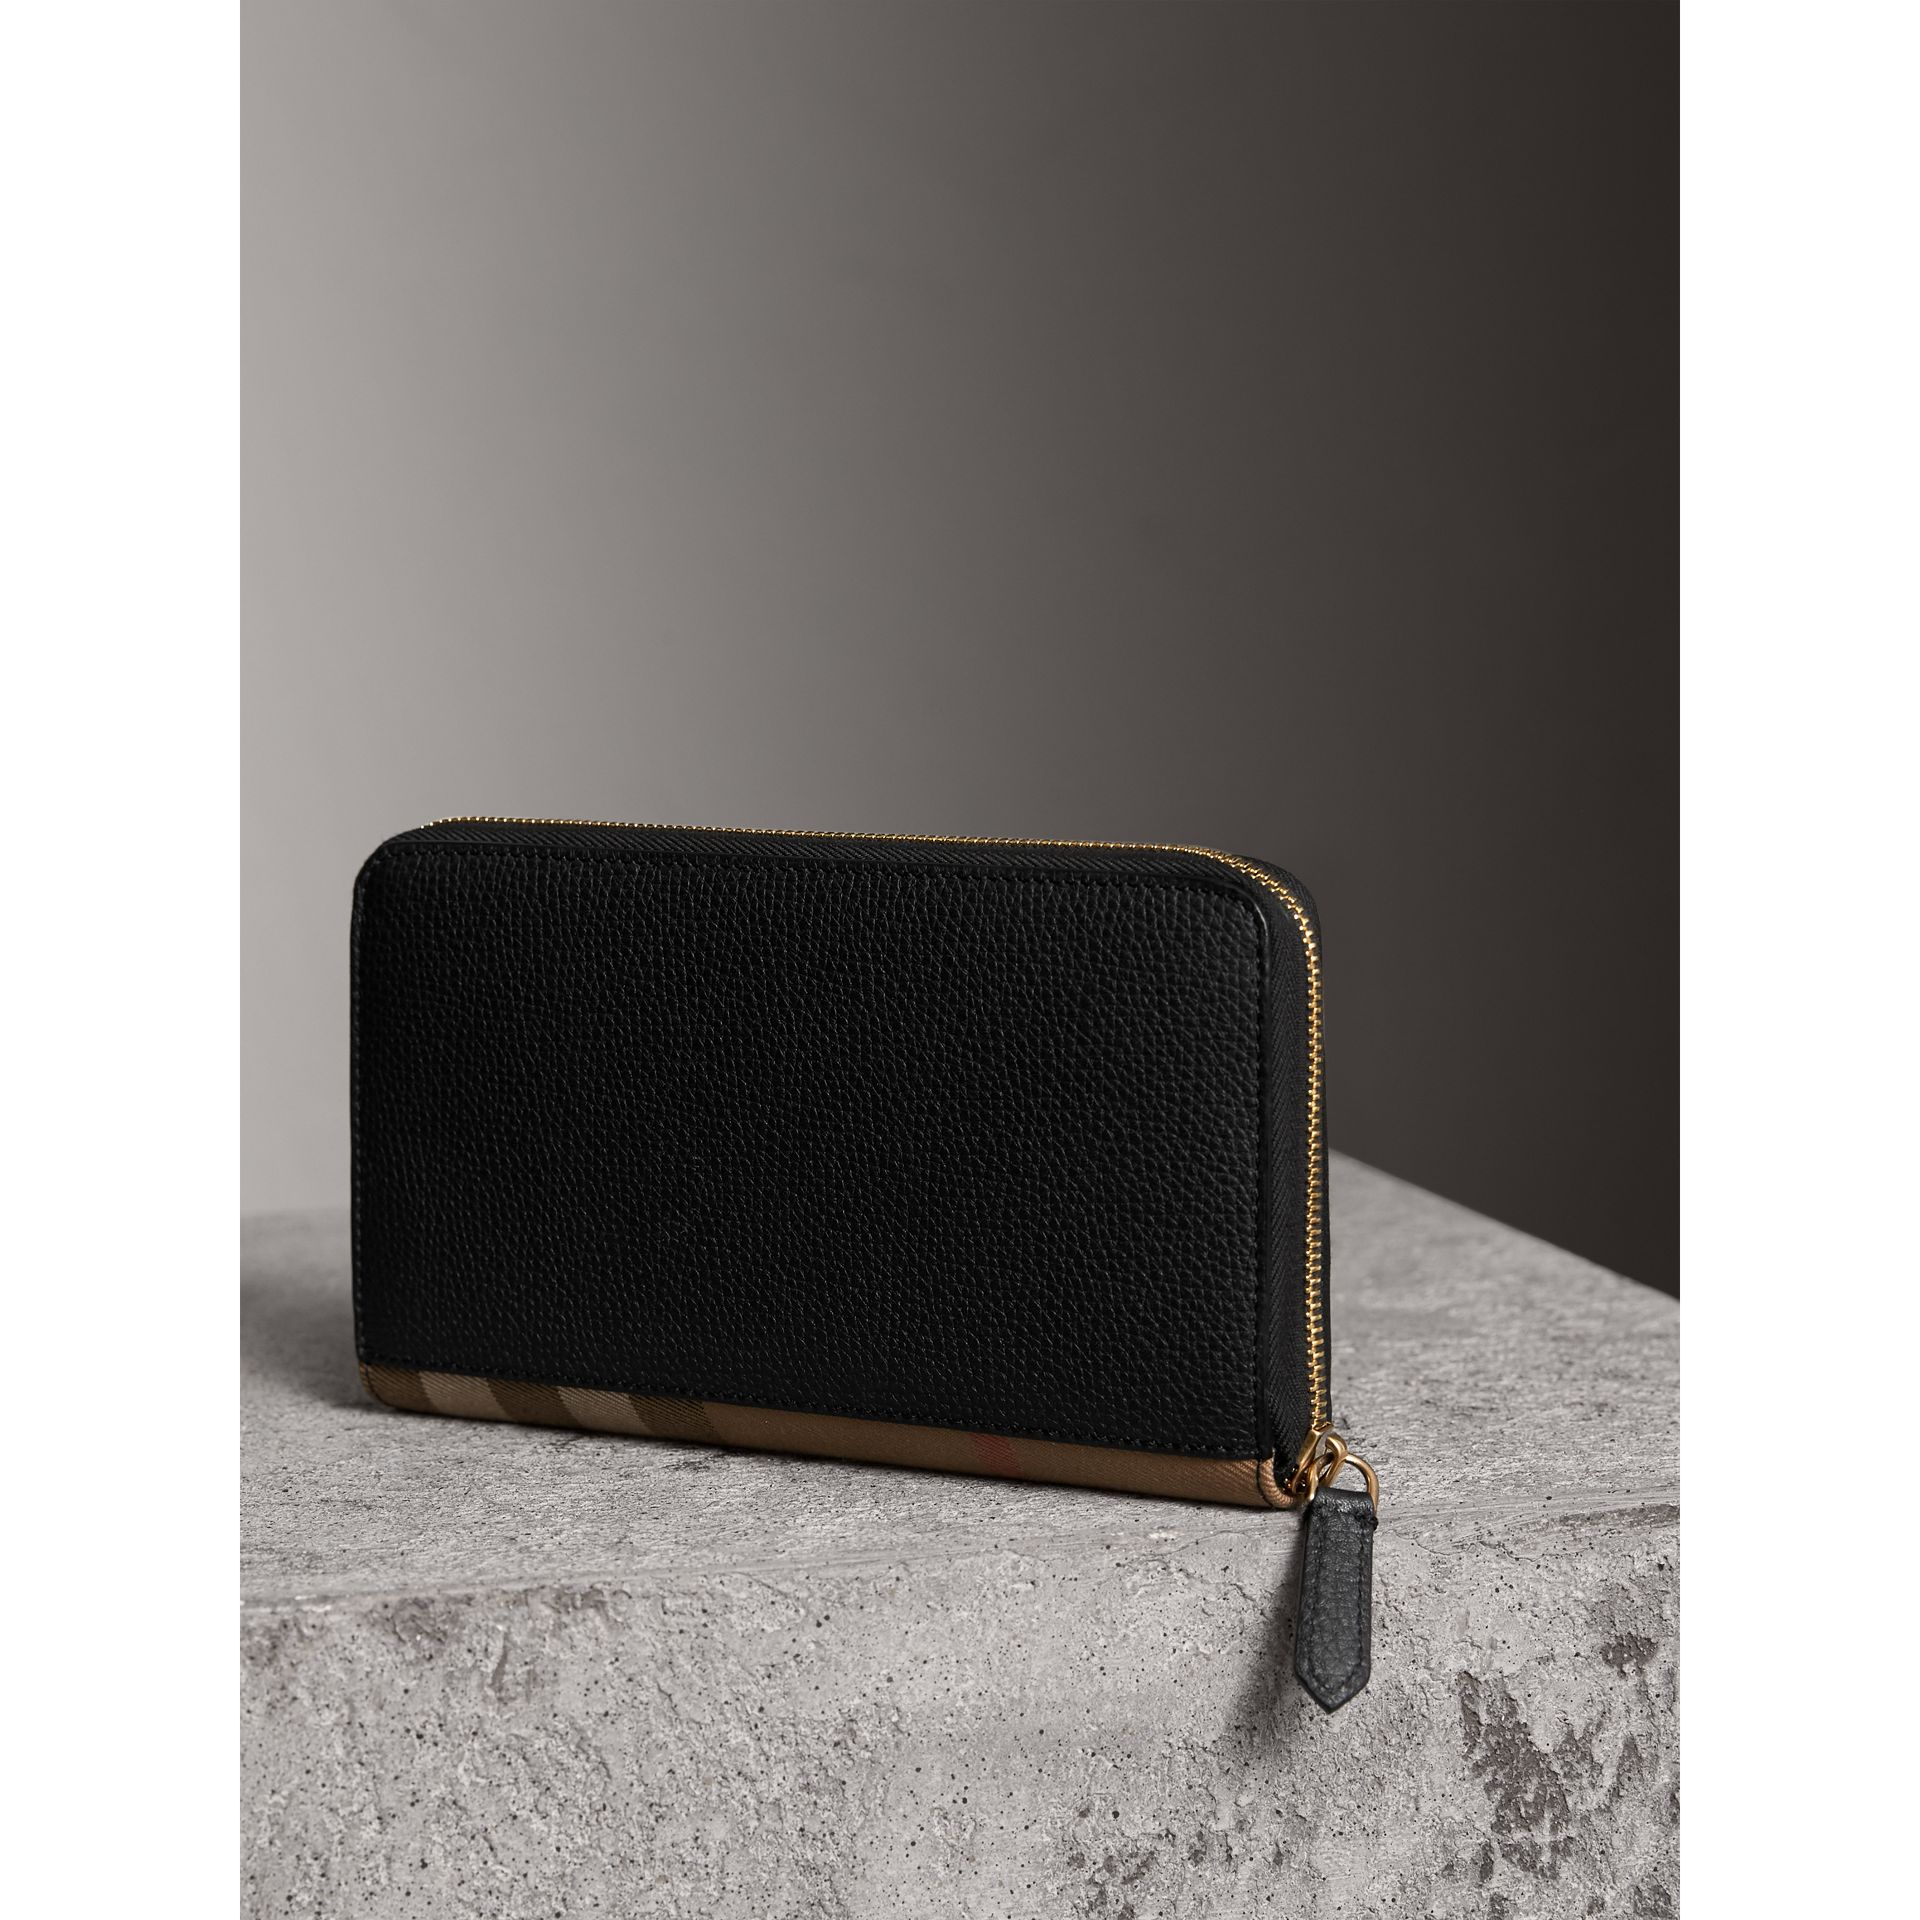 House Check and Grainy Leather Ziparound Wallet in Black | Burberry - gallery image 3